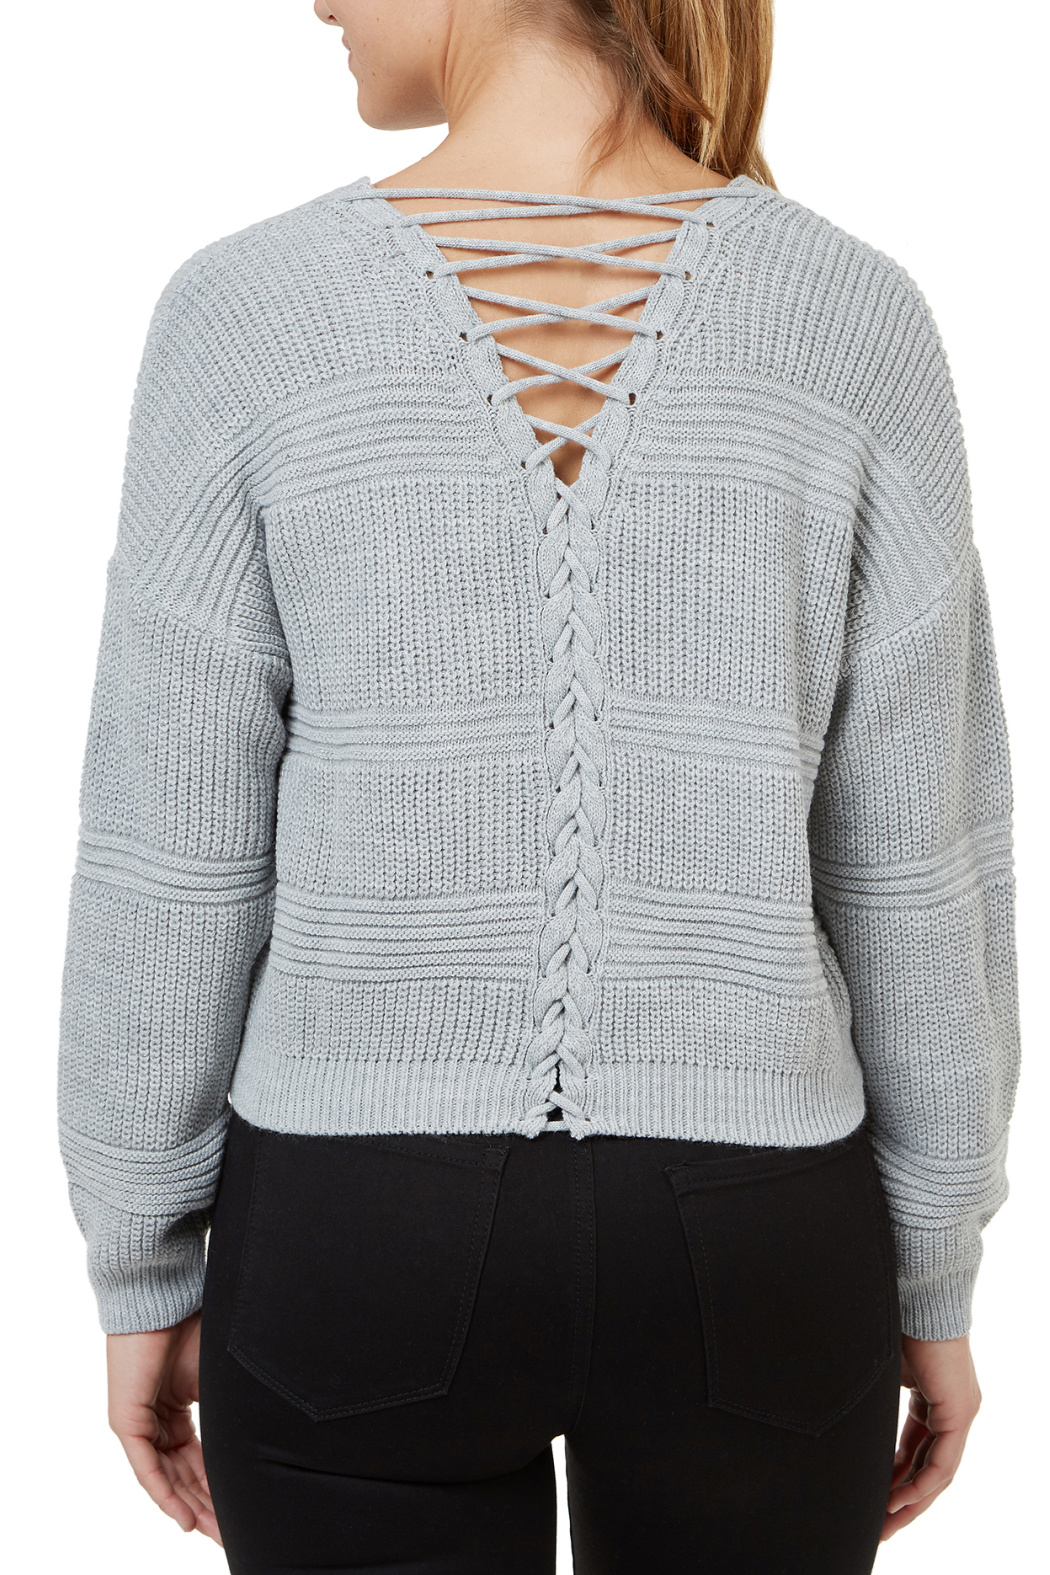 Numero Denim Lace Up Back Crop Sweater - Front Full Image